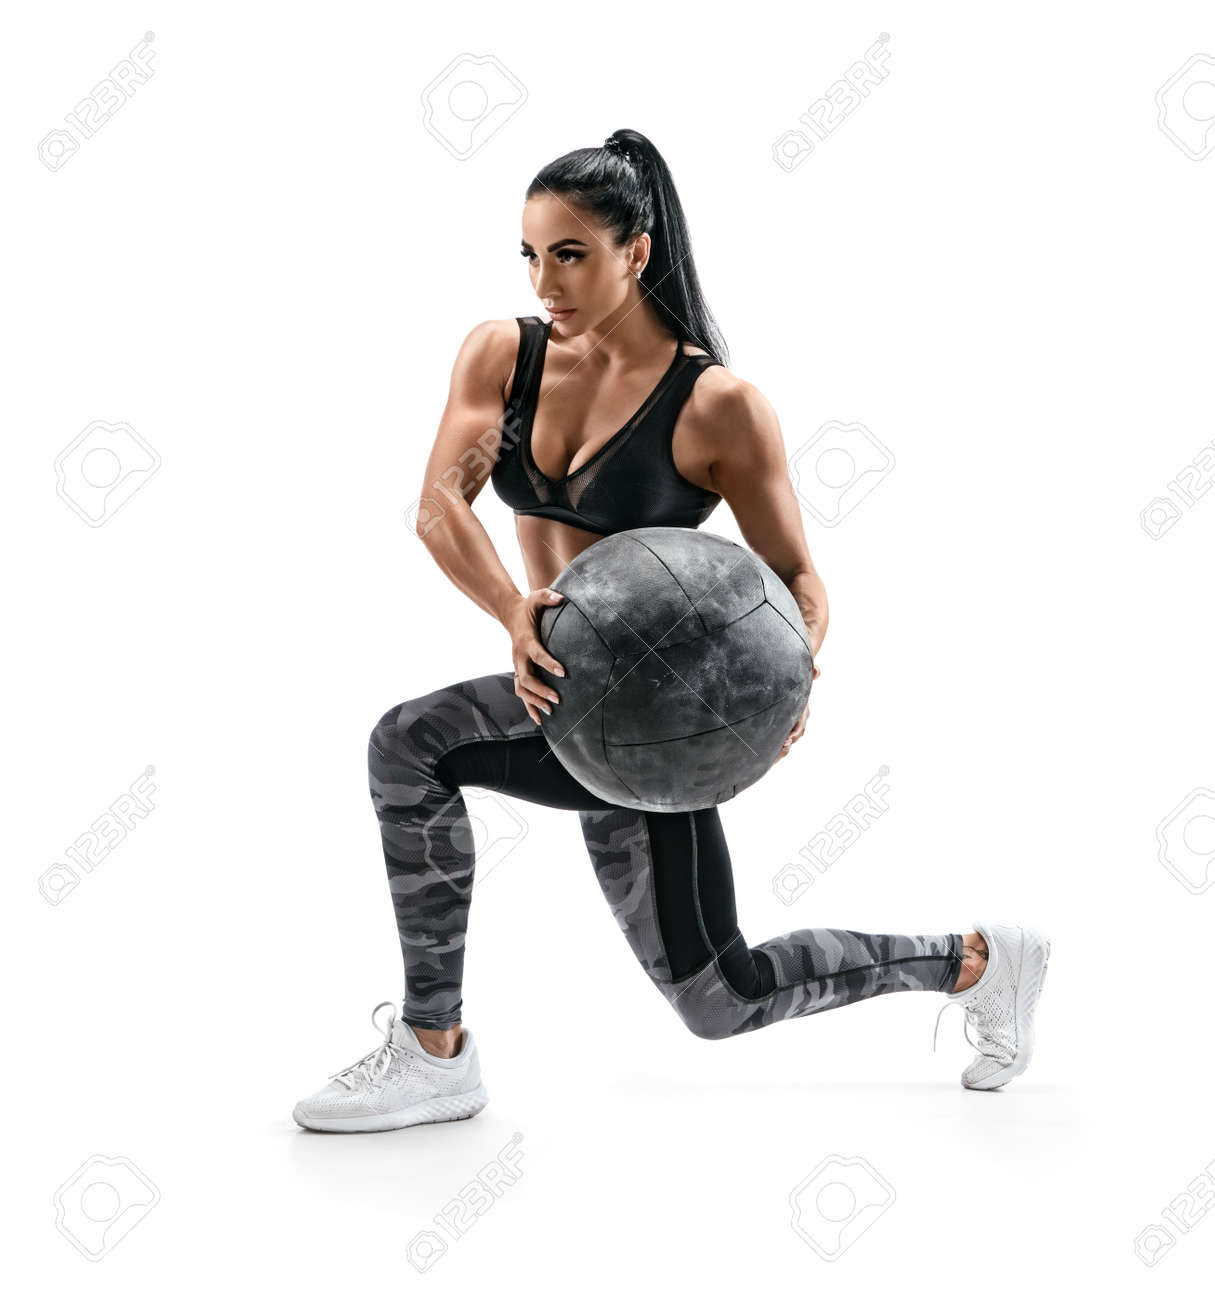 Muscular woman doing lunge twist exercise with med ball. Photo of woman with great physique isolated on white background. Strength and motivation - 105002510